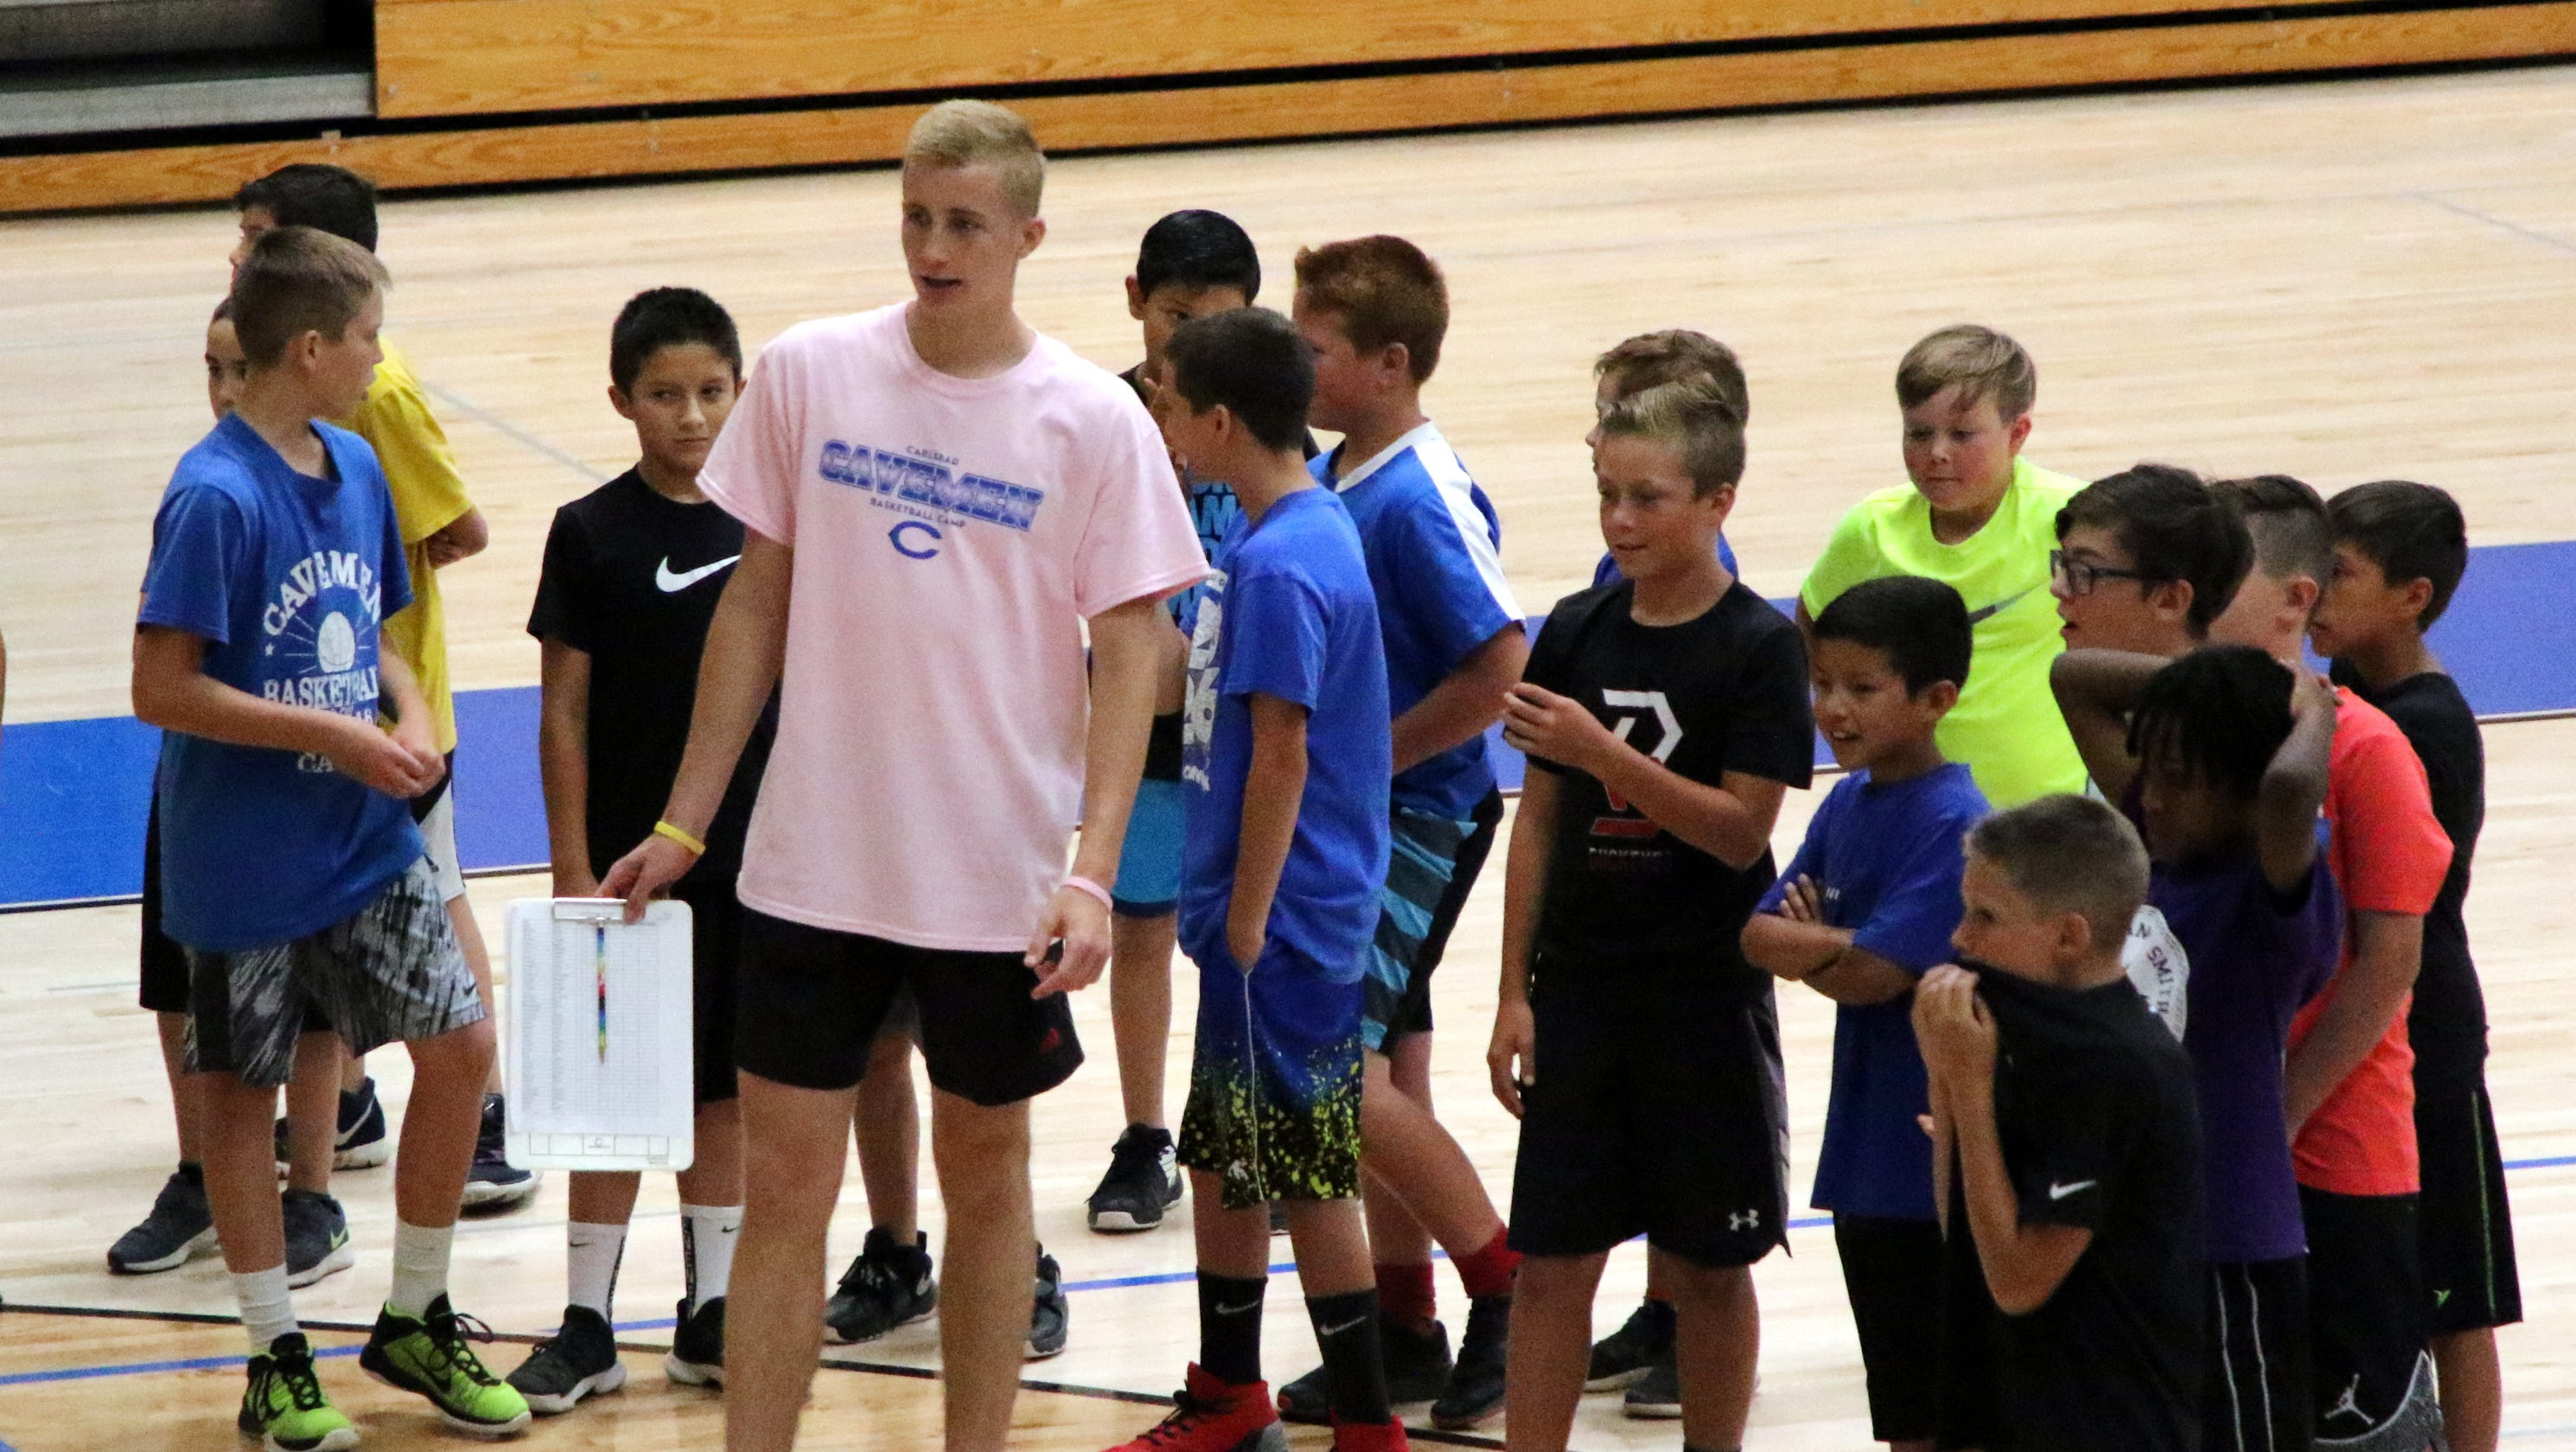 NMAA To Discuss Summer Camp Plans Amid New COVID-19 Health